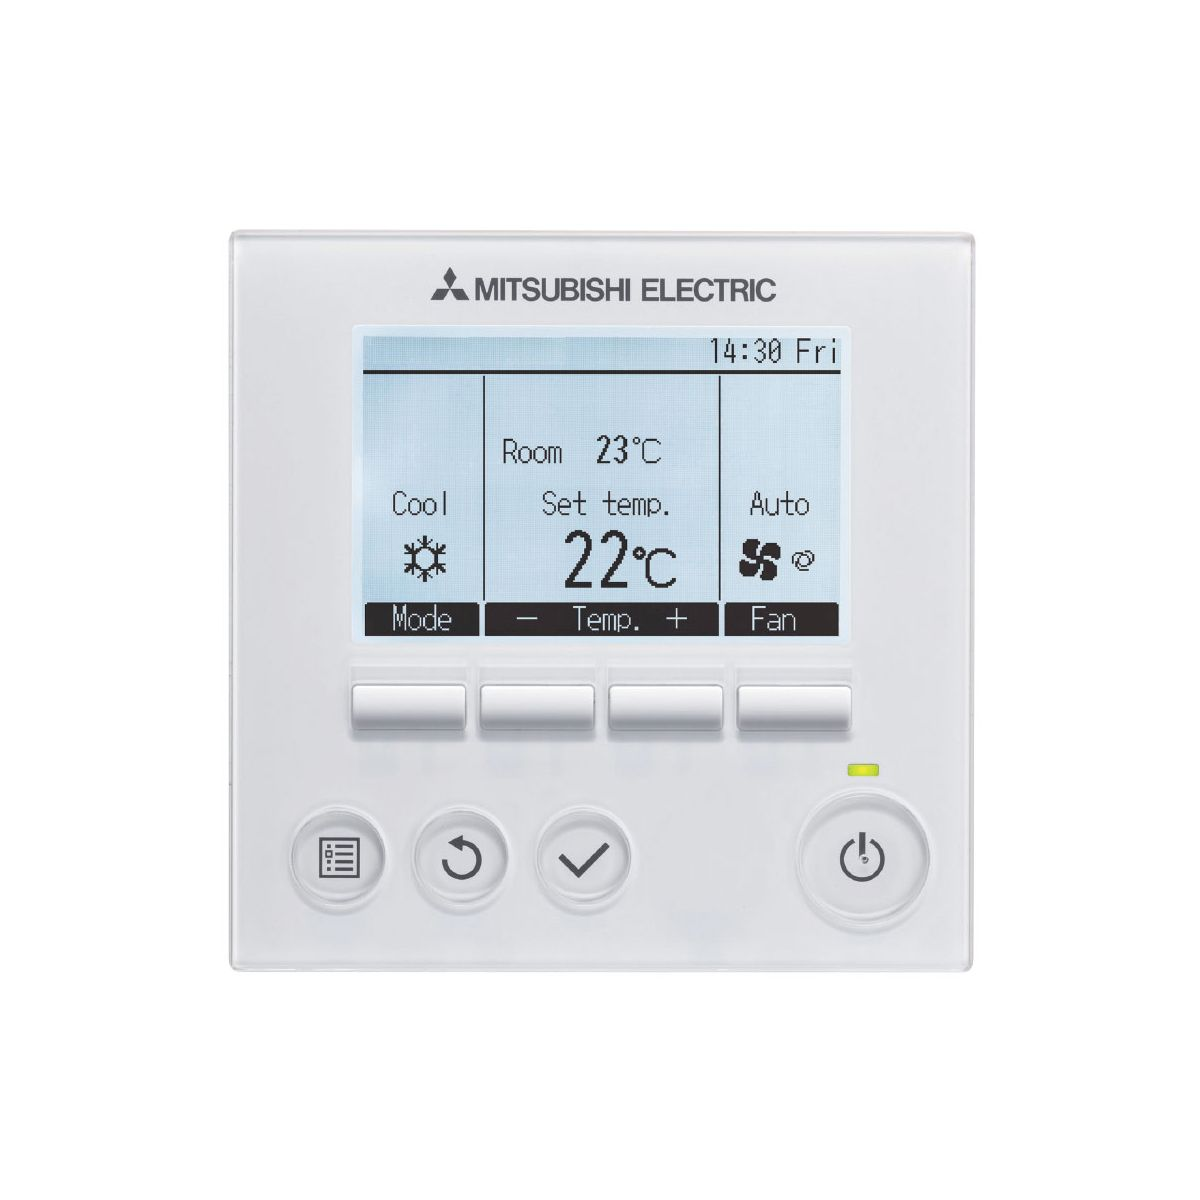 Mitsubishi Electric Remote >> Hard Wired Mitsubishi Electric Air Conditioning 289124 Par32maa J Deluxe Hard Wired Remote Controller